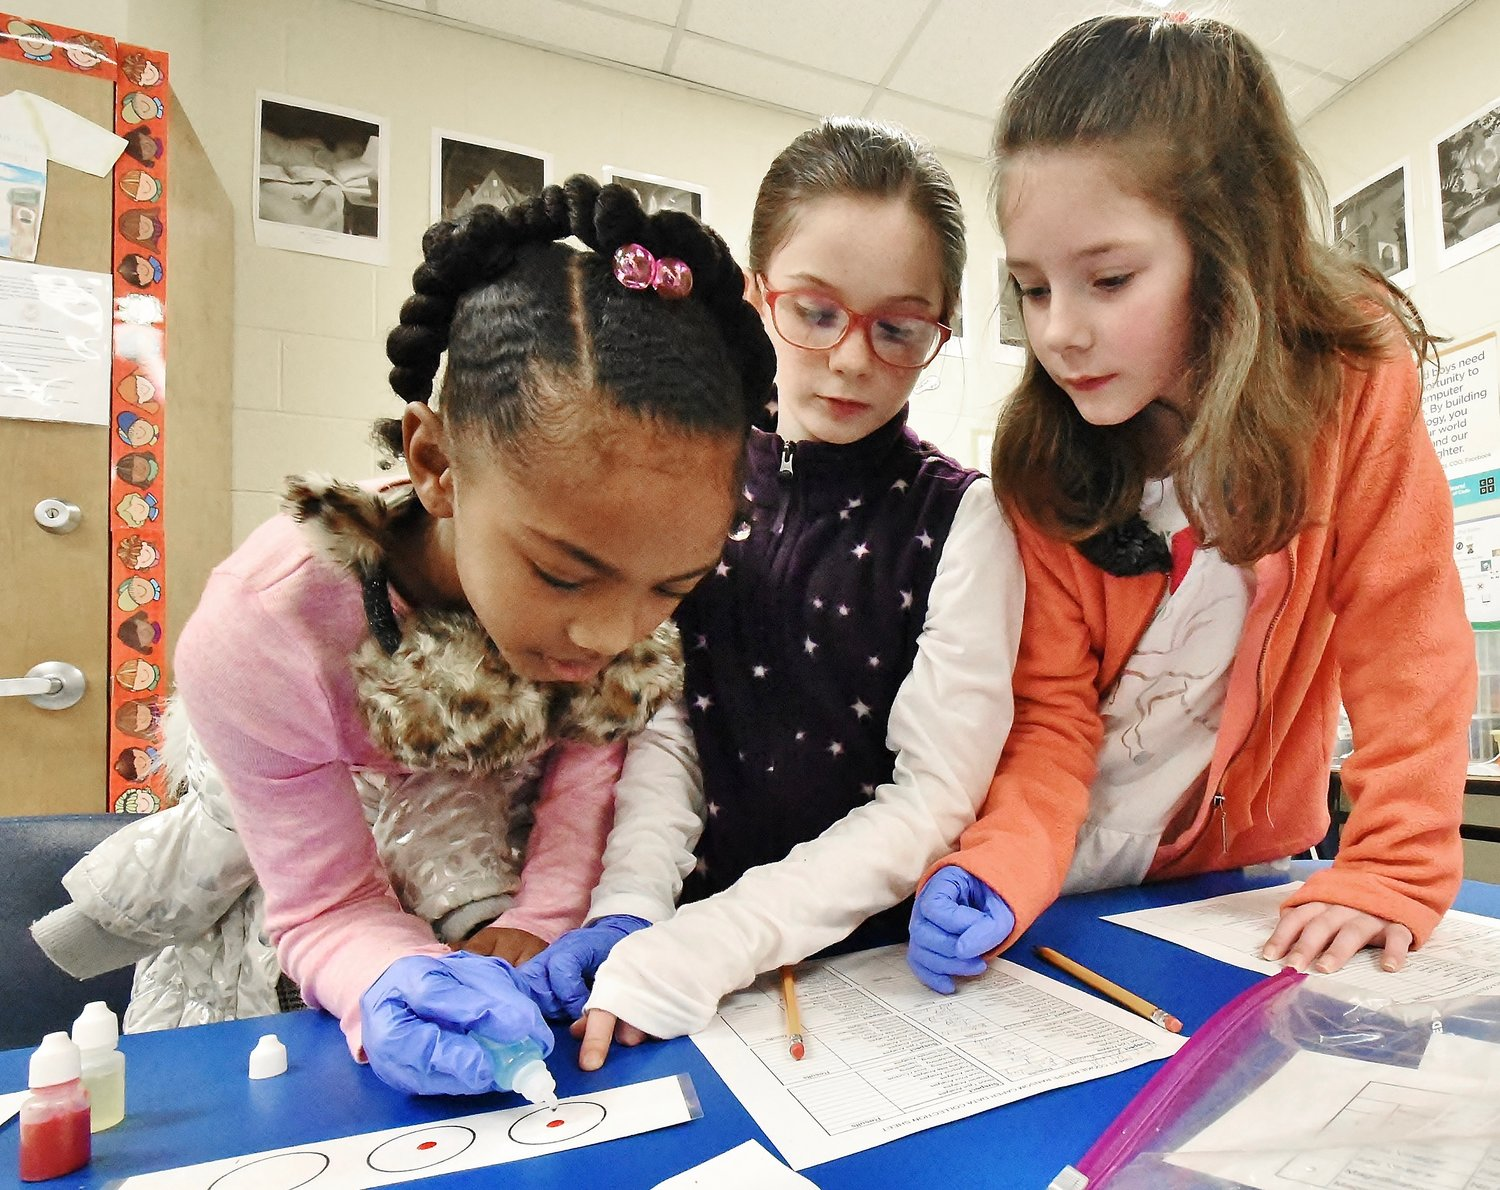 Kingston Elementary School third graders, from left, Kamillah Richardson, Katelyn Carroll and Madison Eubanks test evidence in an attempt to solve a forensics case.